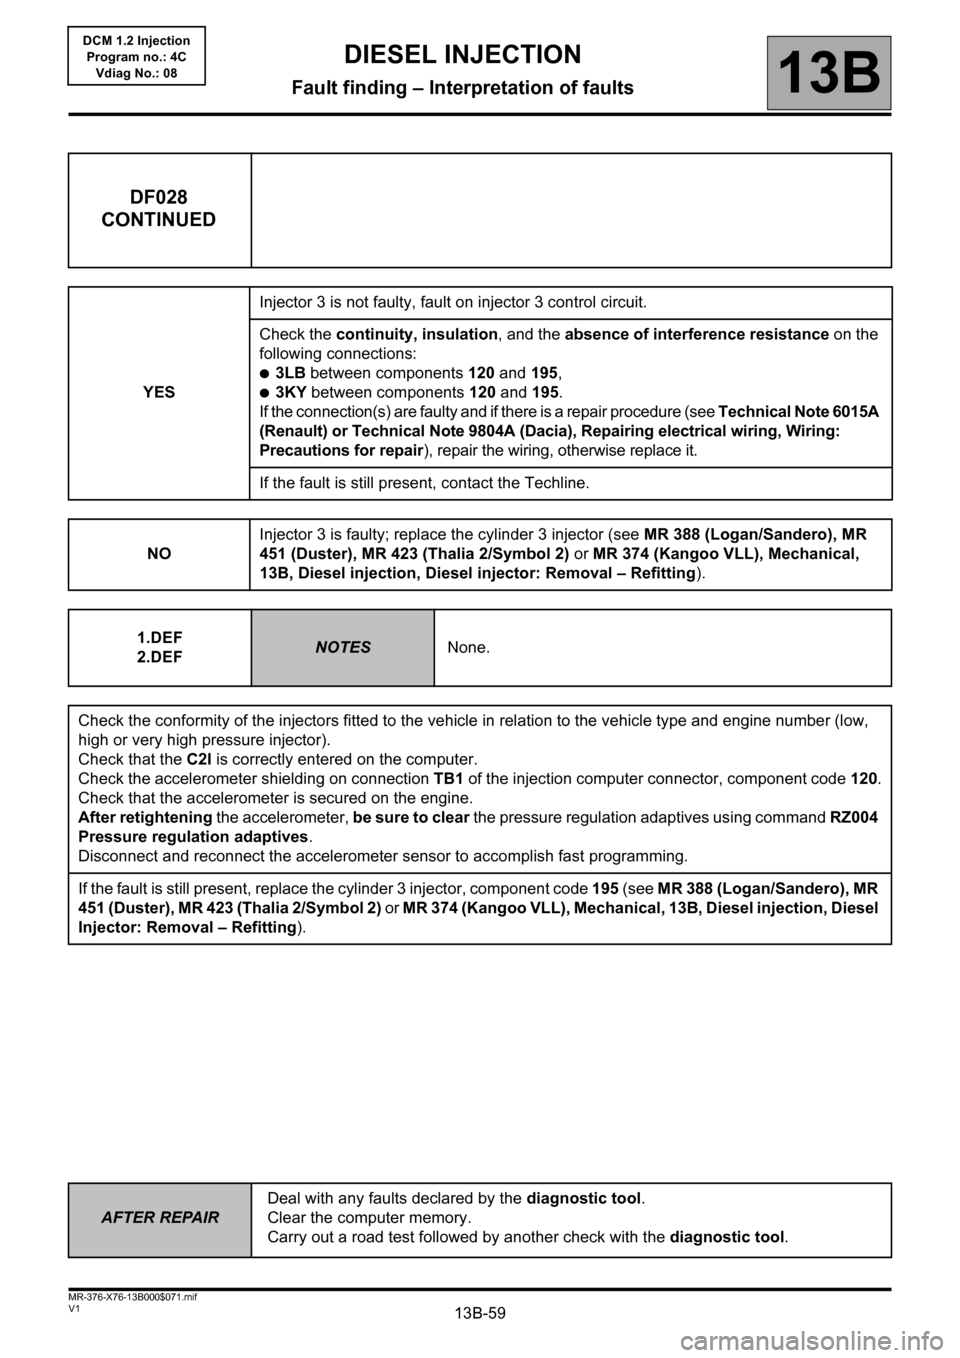 RENAULT KANGOO 2013 X61 / 2.G Diesel DCM 1.2 Injection Workshop Manual, Page 59